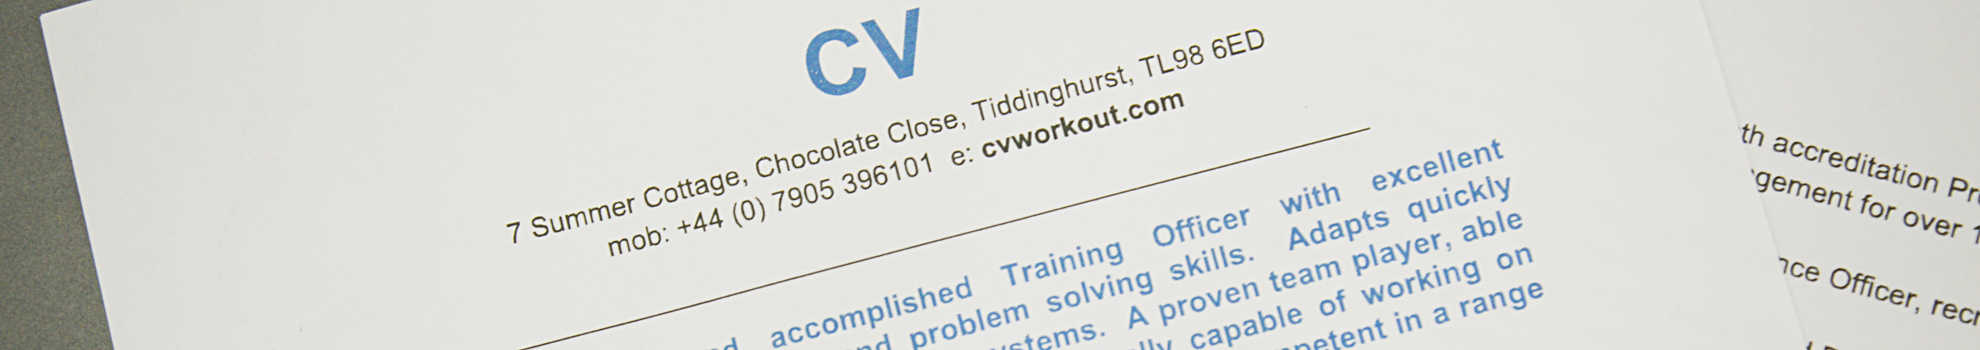 Bespoke CV Advice | CV Workout